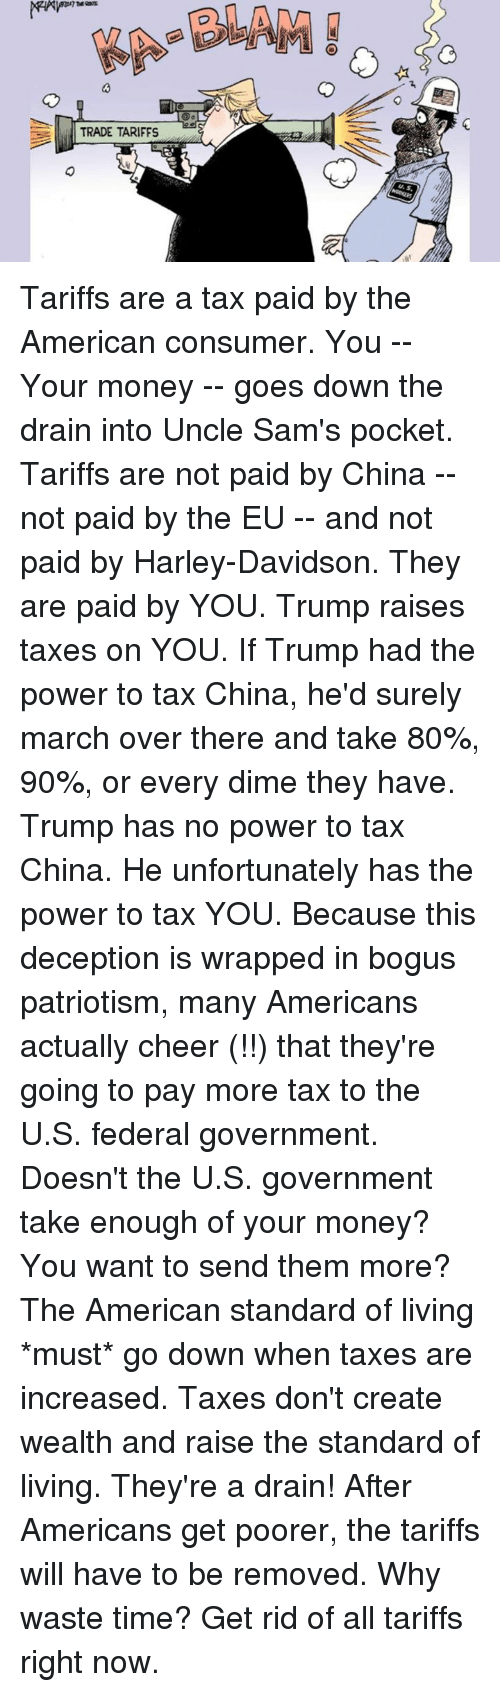 Sams: TRADE TARIFFS Tariffs are a tax paid by the American consumer.  You -- Your money -- goes down the drain into Uncle Sam's pocket.  Tariffs are not paid by China -- not paid by the EU -- and not paid by Harley-Davidson.  They are paid by YOU. Trump raises taxes on YOU.  If Trump had the power to tax China, he'd surely march over there and take 80%, 90%, or every dime they have.  Trump has no power to tax China.   He unfortunately has the power to tax YOU.  Because this deception is wrapped in bogus patriotism, many Americans actually cheer (!!) that they're going to pay more tax to the U.S. federal government.  Doesn't the U.S. government take enough of your money?  You want to send them more?  The American standard of living *must* go down when taxes are increased. Taxes don't create wealth and raise the standard of living. They're a drain!  After Americans get poorer, the tariffs will have to be removed.   Why waste time?   Get rid of all tariffs right now.